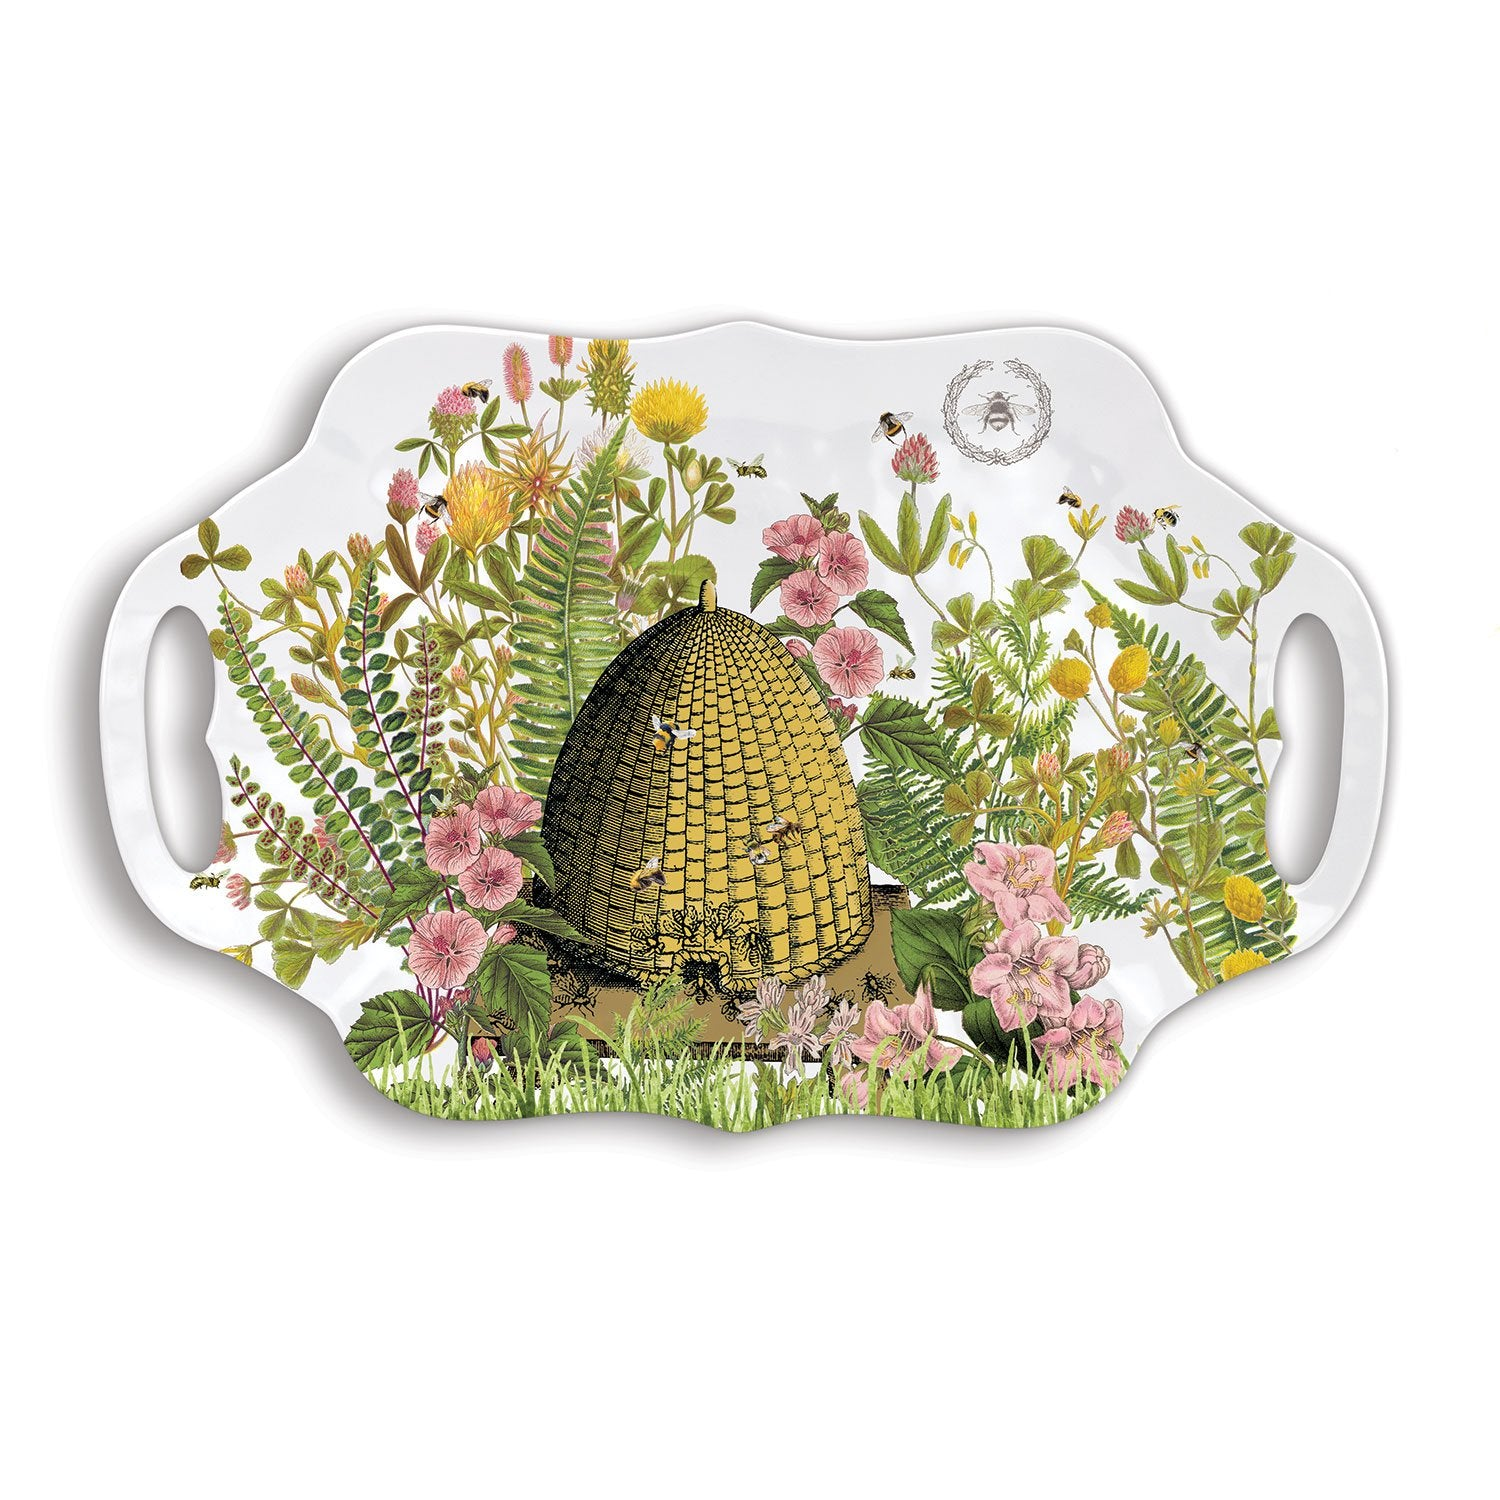 Honey & Clover Melamine Serveware Serving Tray